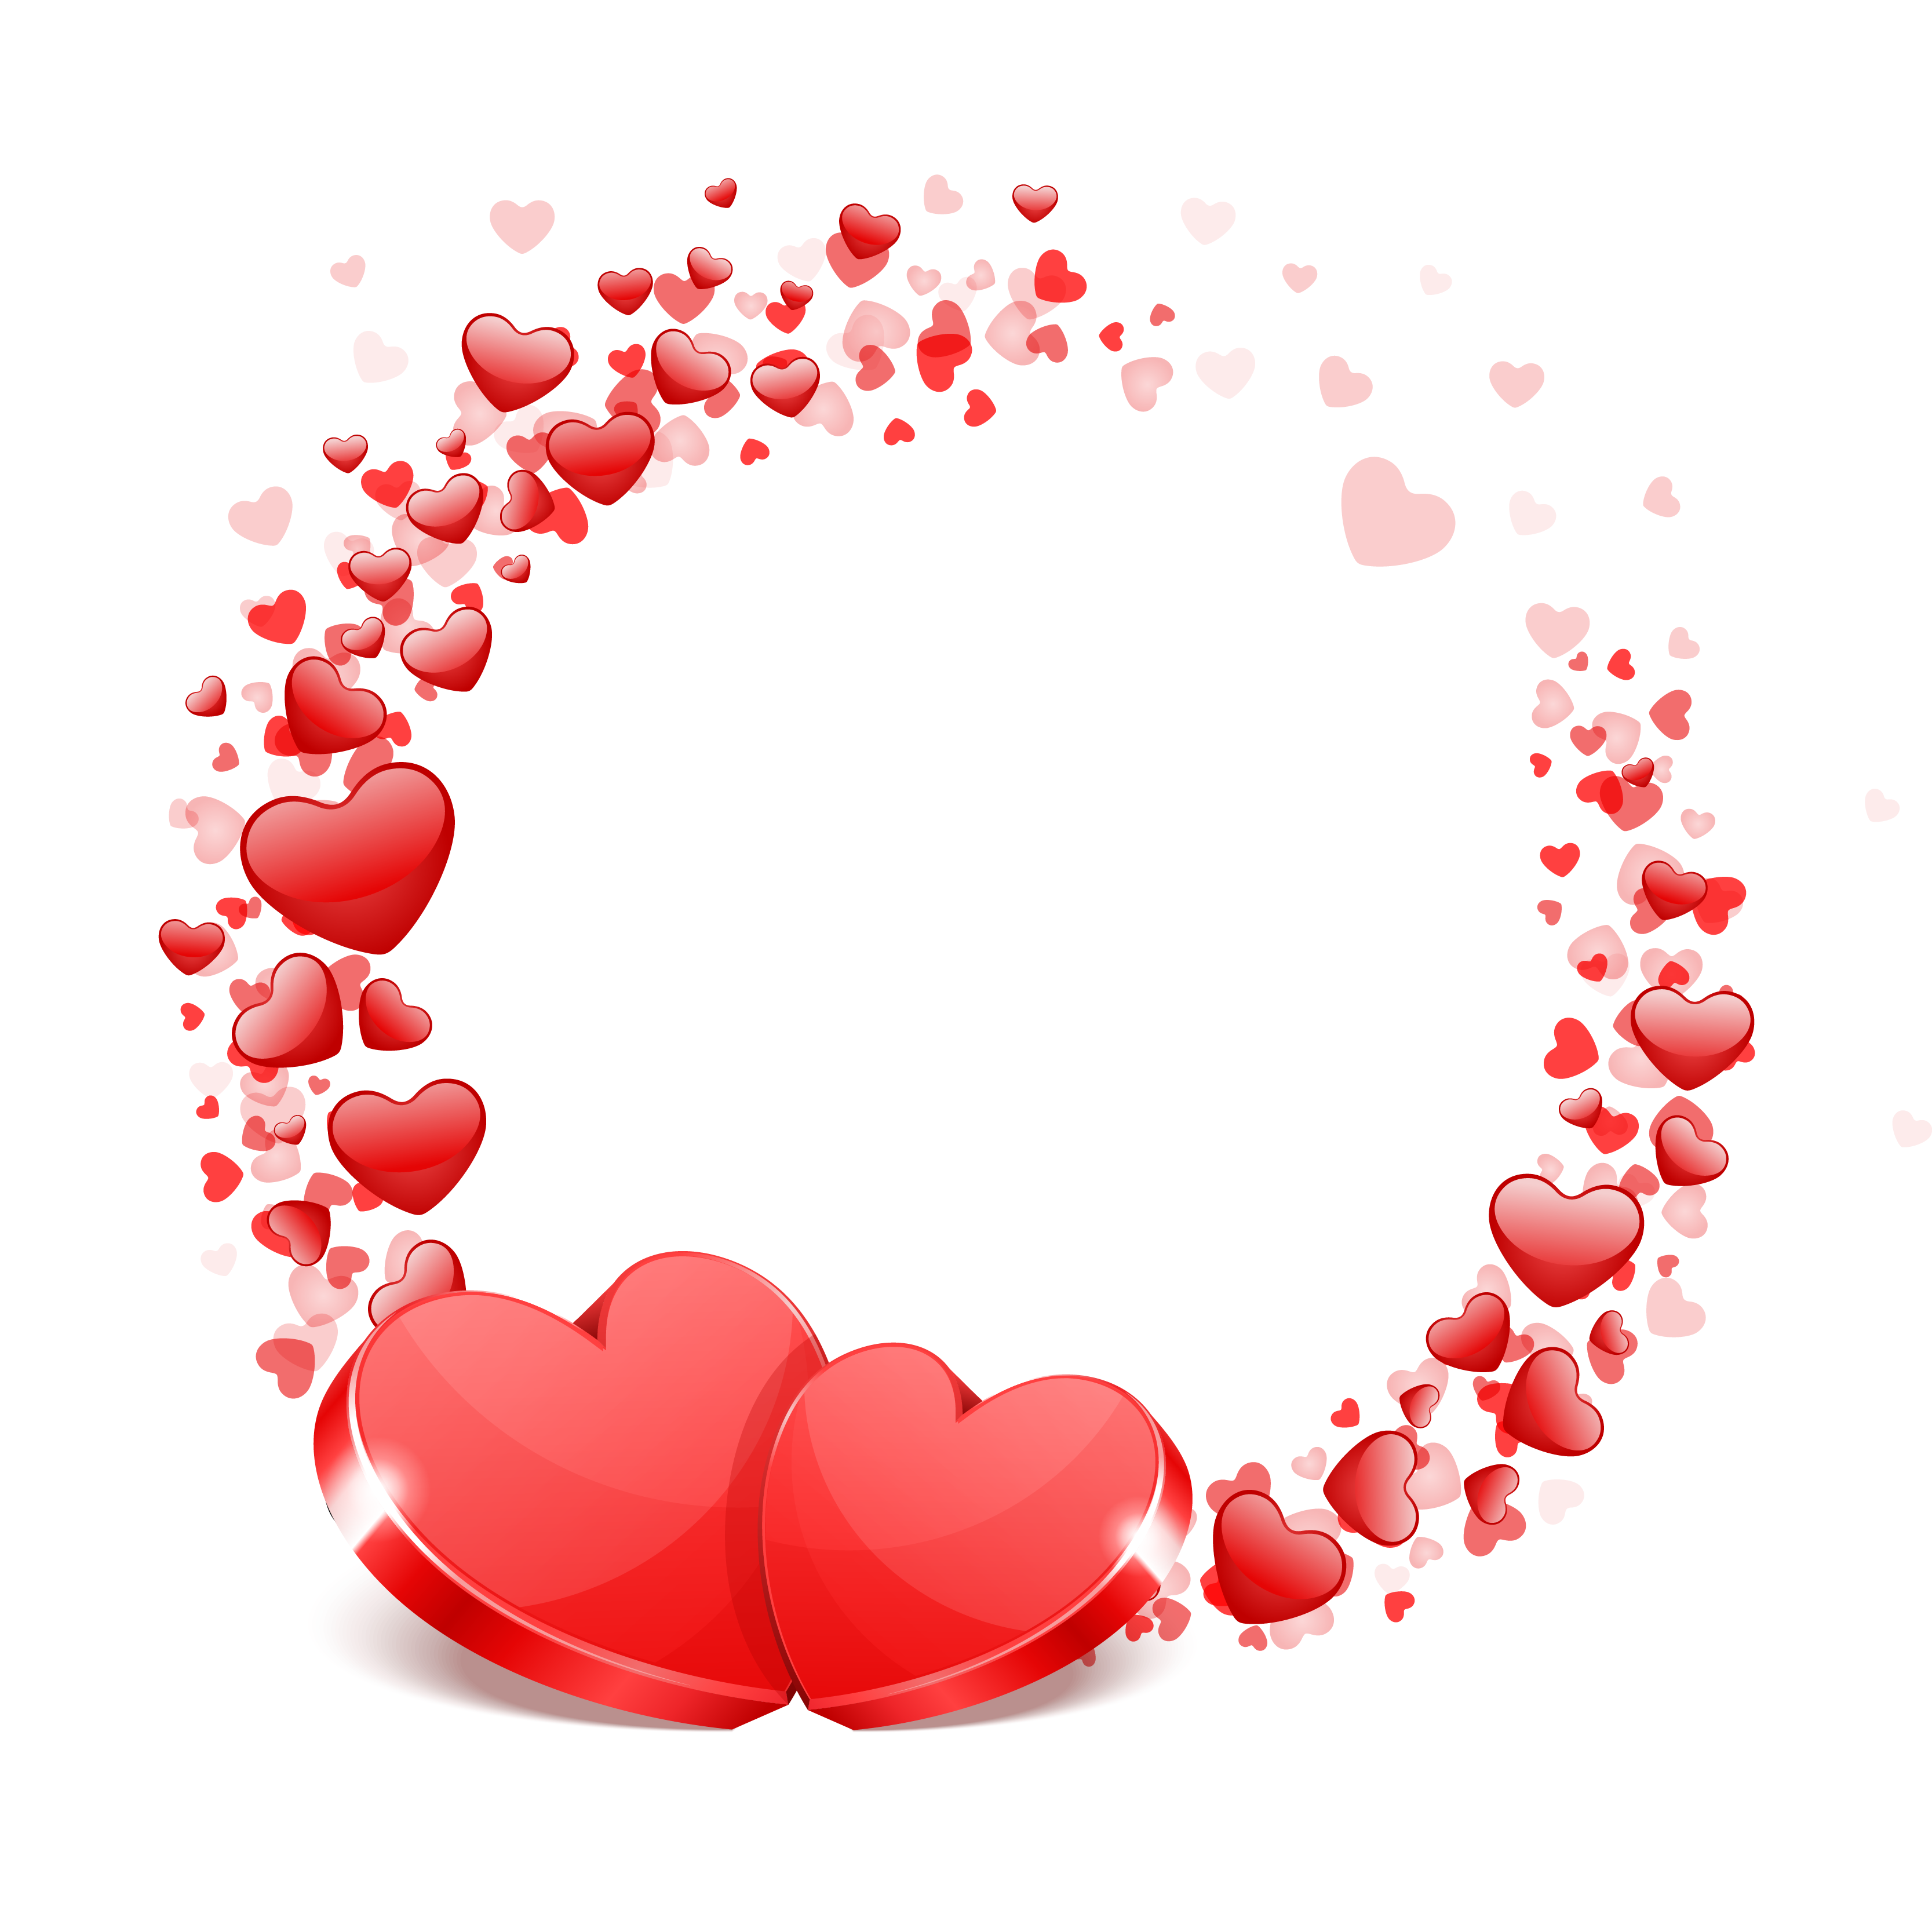 Red Hearts, Festive, Love PNG and Vector with Transparent